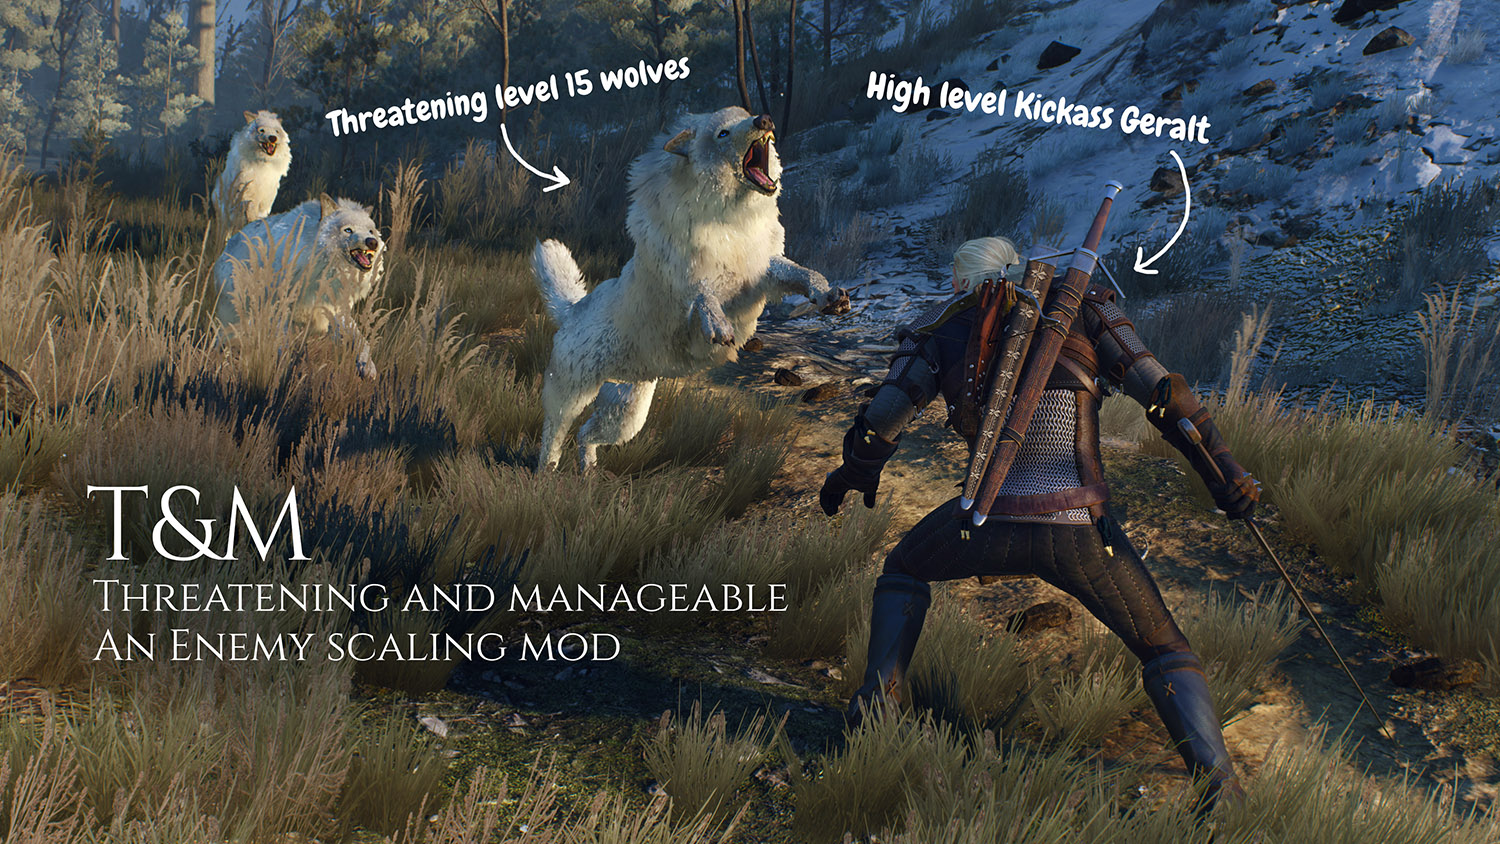 T and M - Threatening and manageable - Enemy scaling mod at